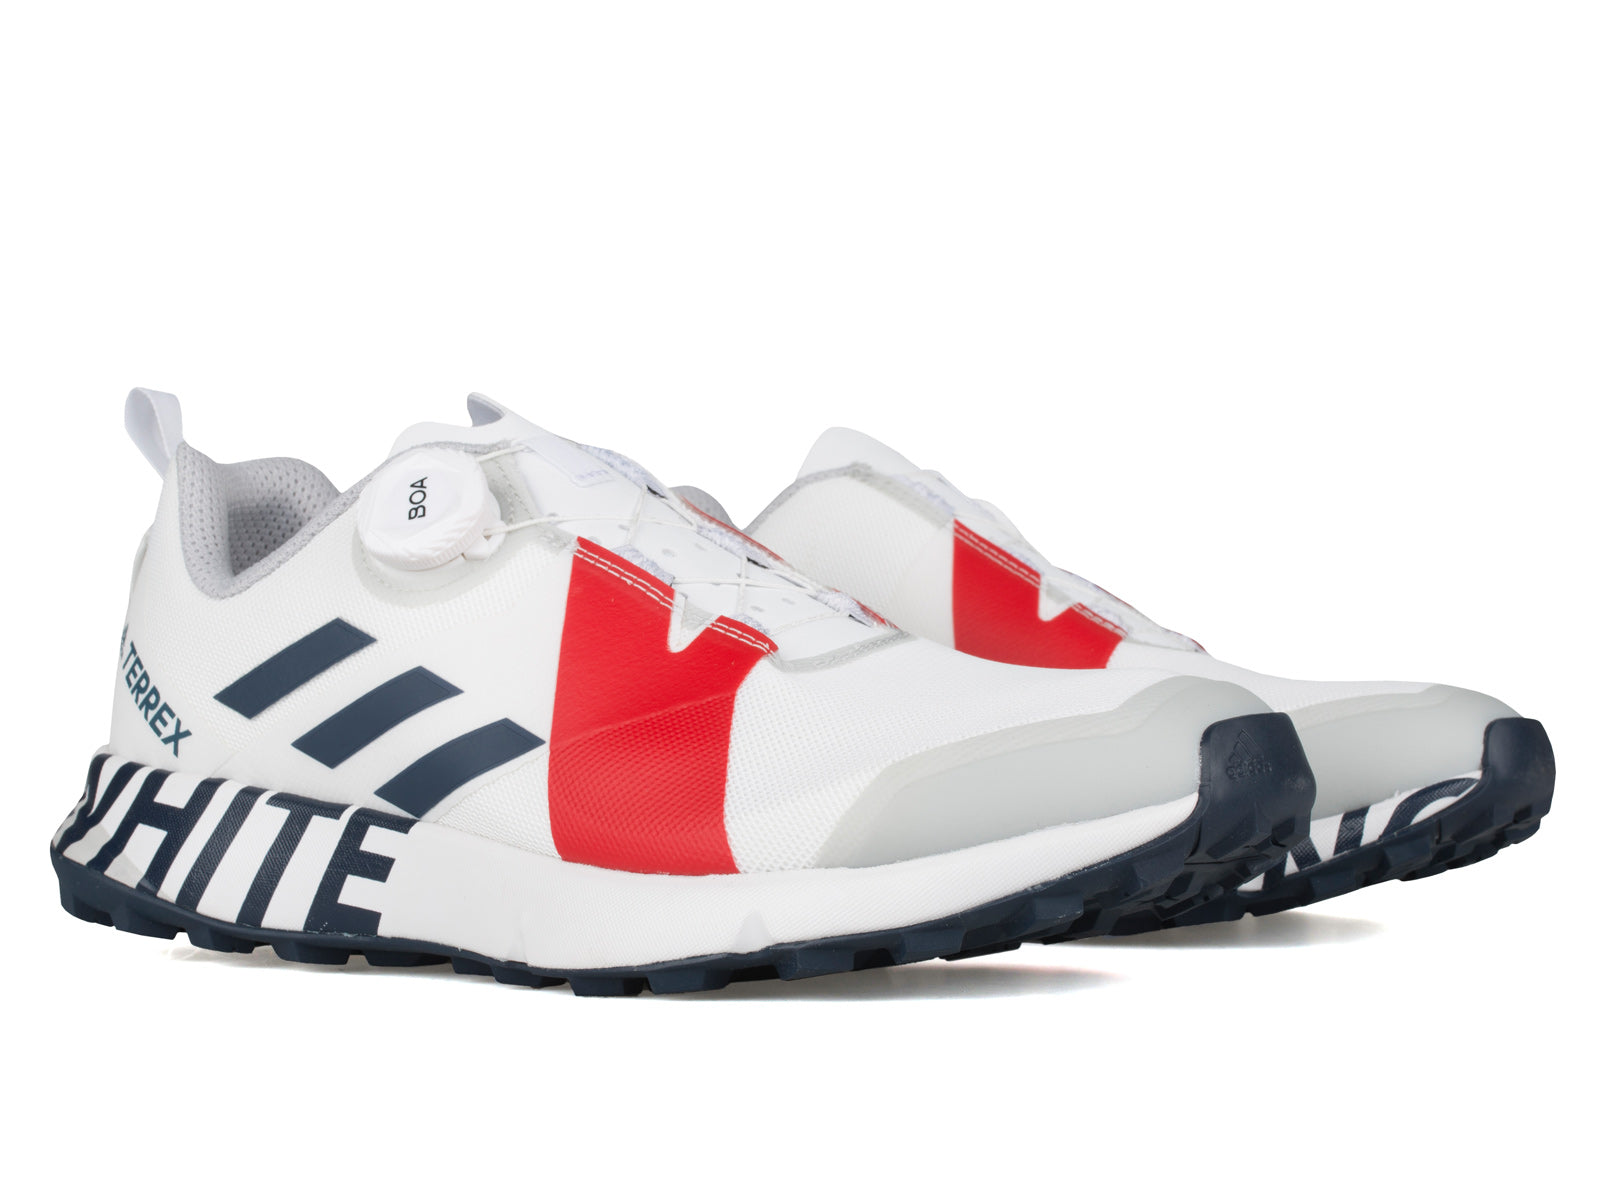 order good out x 2018 shoes 5/18/18: Adidas x White Mountaineering WM Terrex Two Boa ...